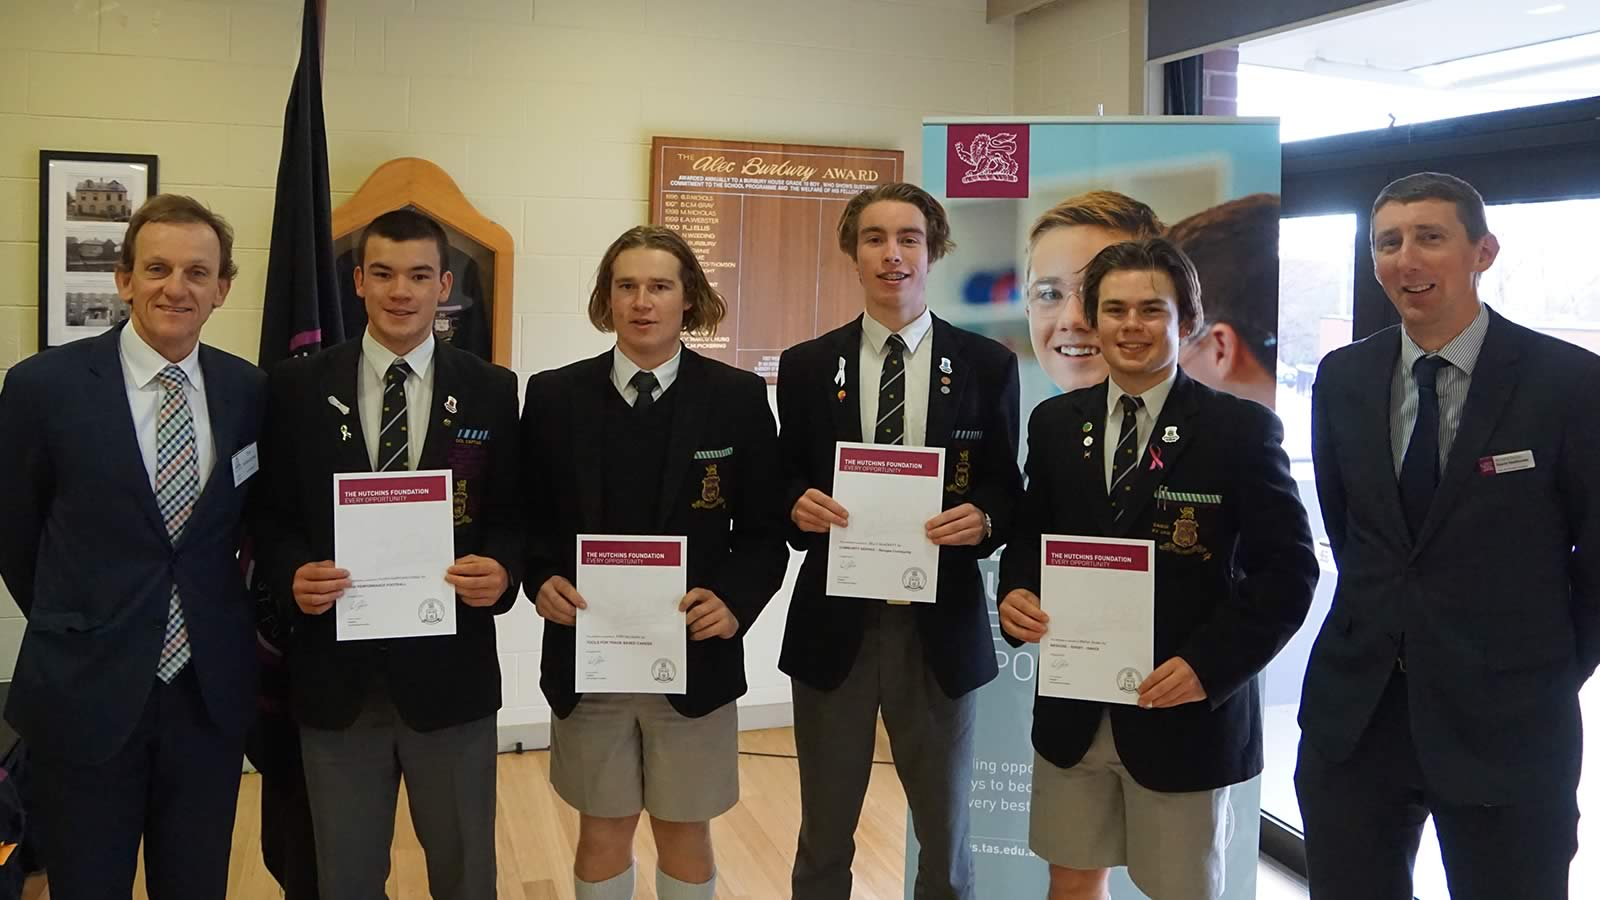 Mr Tim Johnstone (Hutchins Foundation Board member), Oliver Burrows-Cheng (School Captain), Finn McLagan (Year 11), Billy Blackett (Year 12 Prefect), Martyn Szoke (Year 12 Prefect) and Mr Richard Davies (Deputy Headmaster).